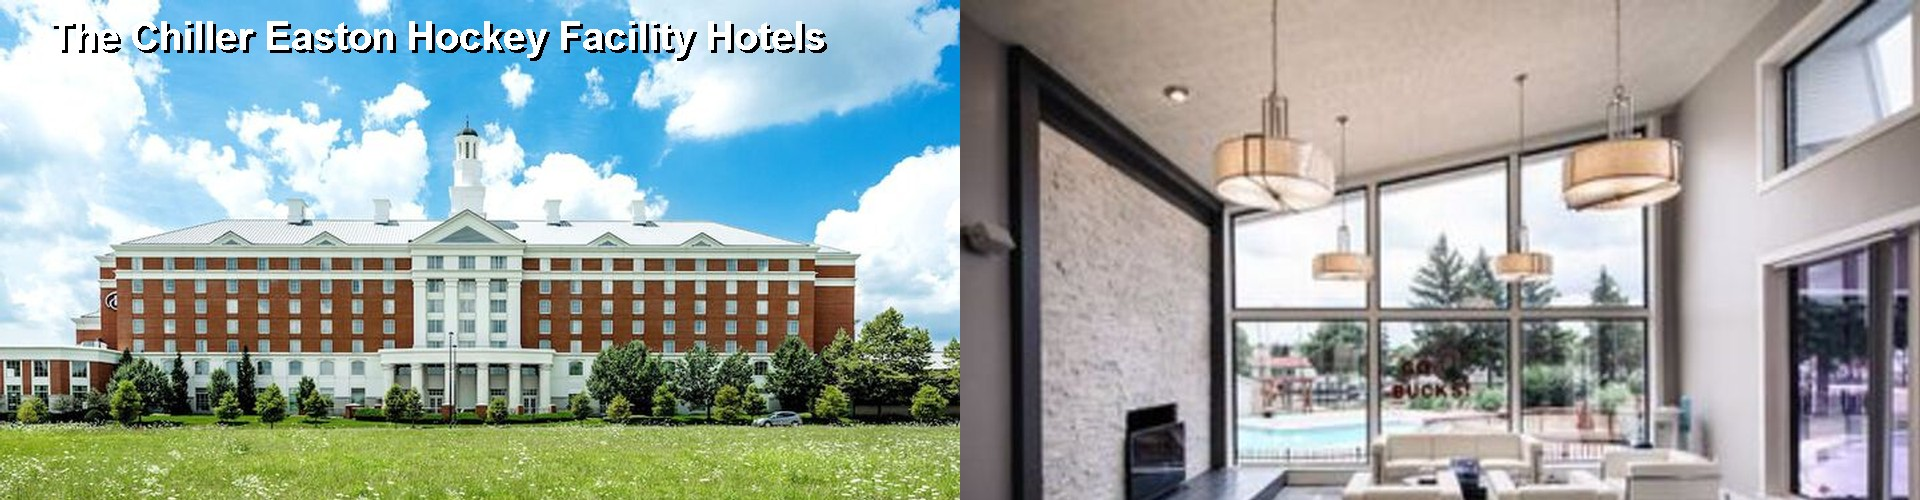 5 Best Hotels Near The Chiller Easton Hockey Facility